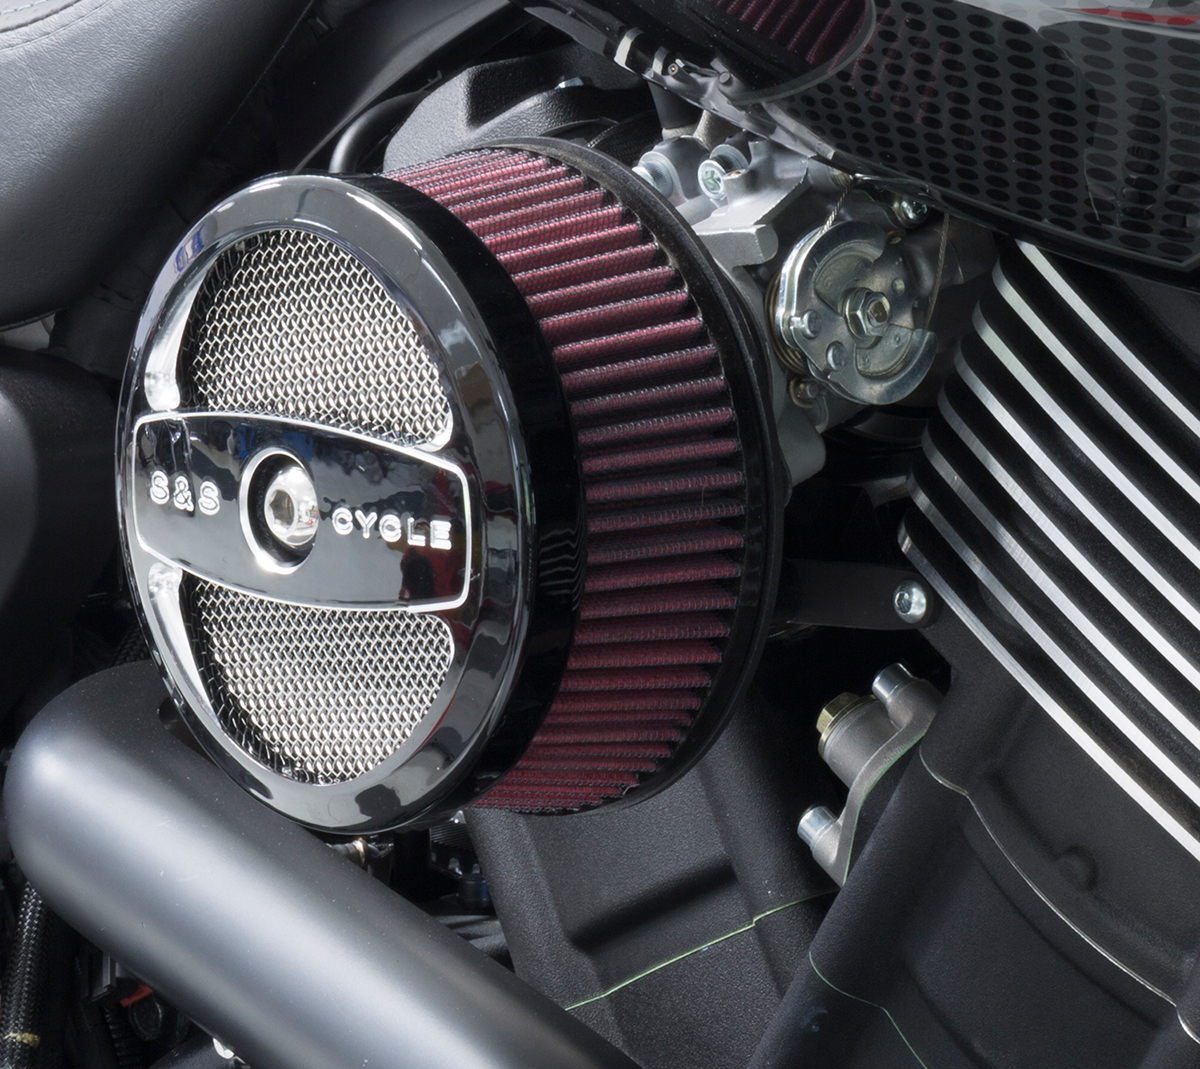 Street Rod Air Cleaners : S cycle black stealth air cleaner kit for harley